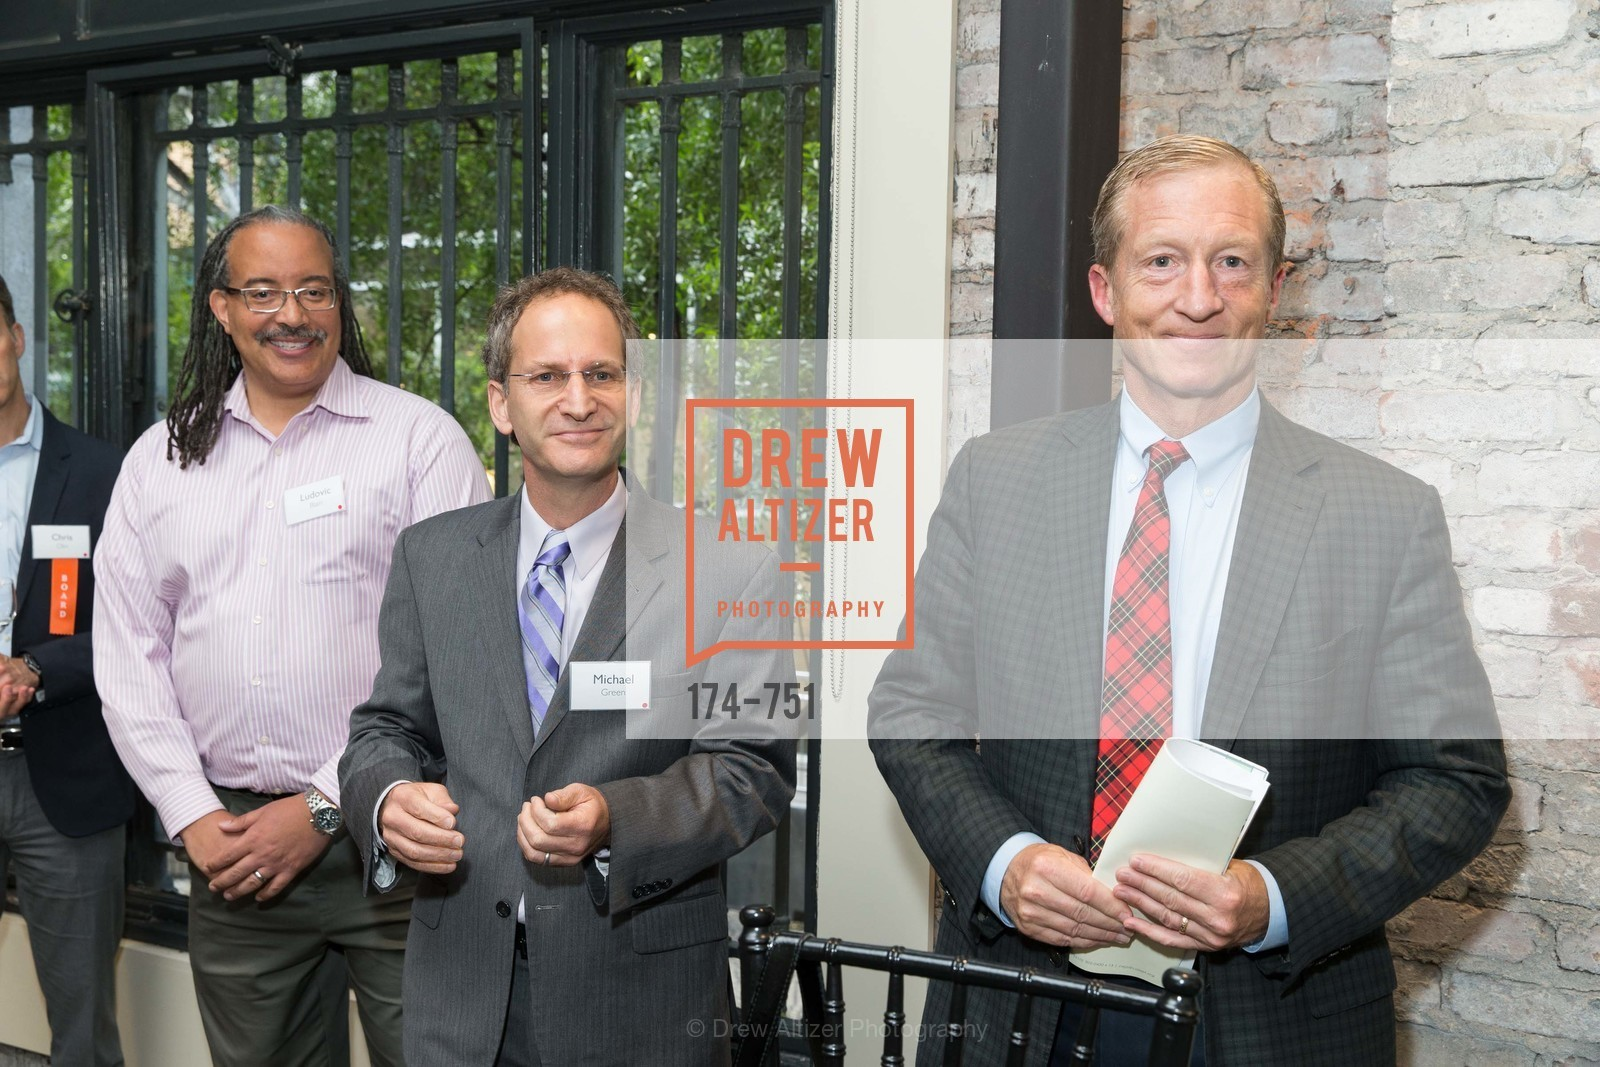 Ludovic Blain, Michael Green, Tom Steyer, CENTER FOR ENVIRONMENTAL HEALTH (CEH) 2015 Gala, US, May 28th, 2015,Drew Altizer, Drew Altizer Photography, full-service agency, private events, San Francisco photographer, photographer california